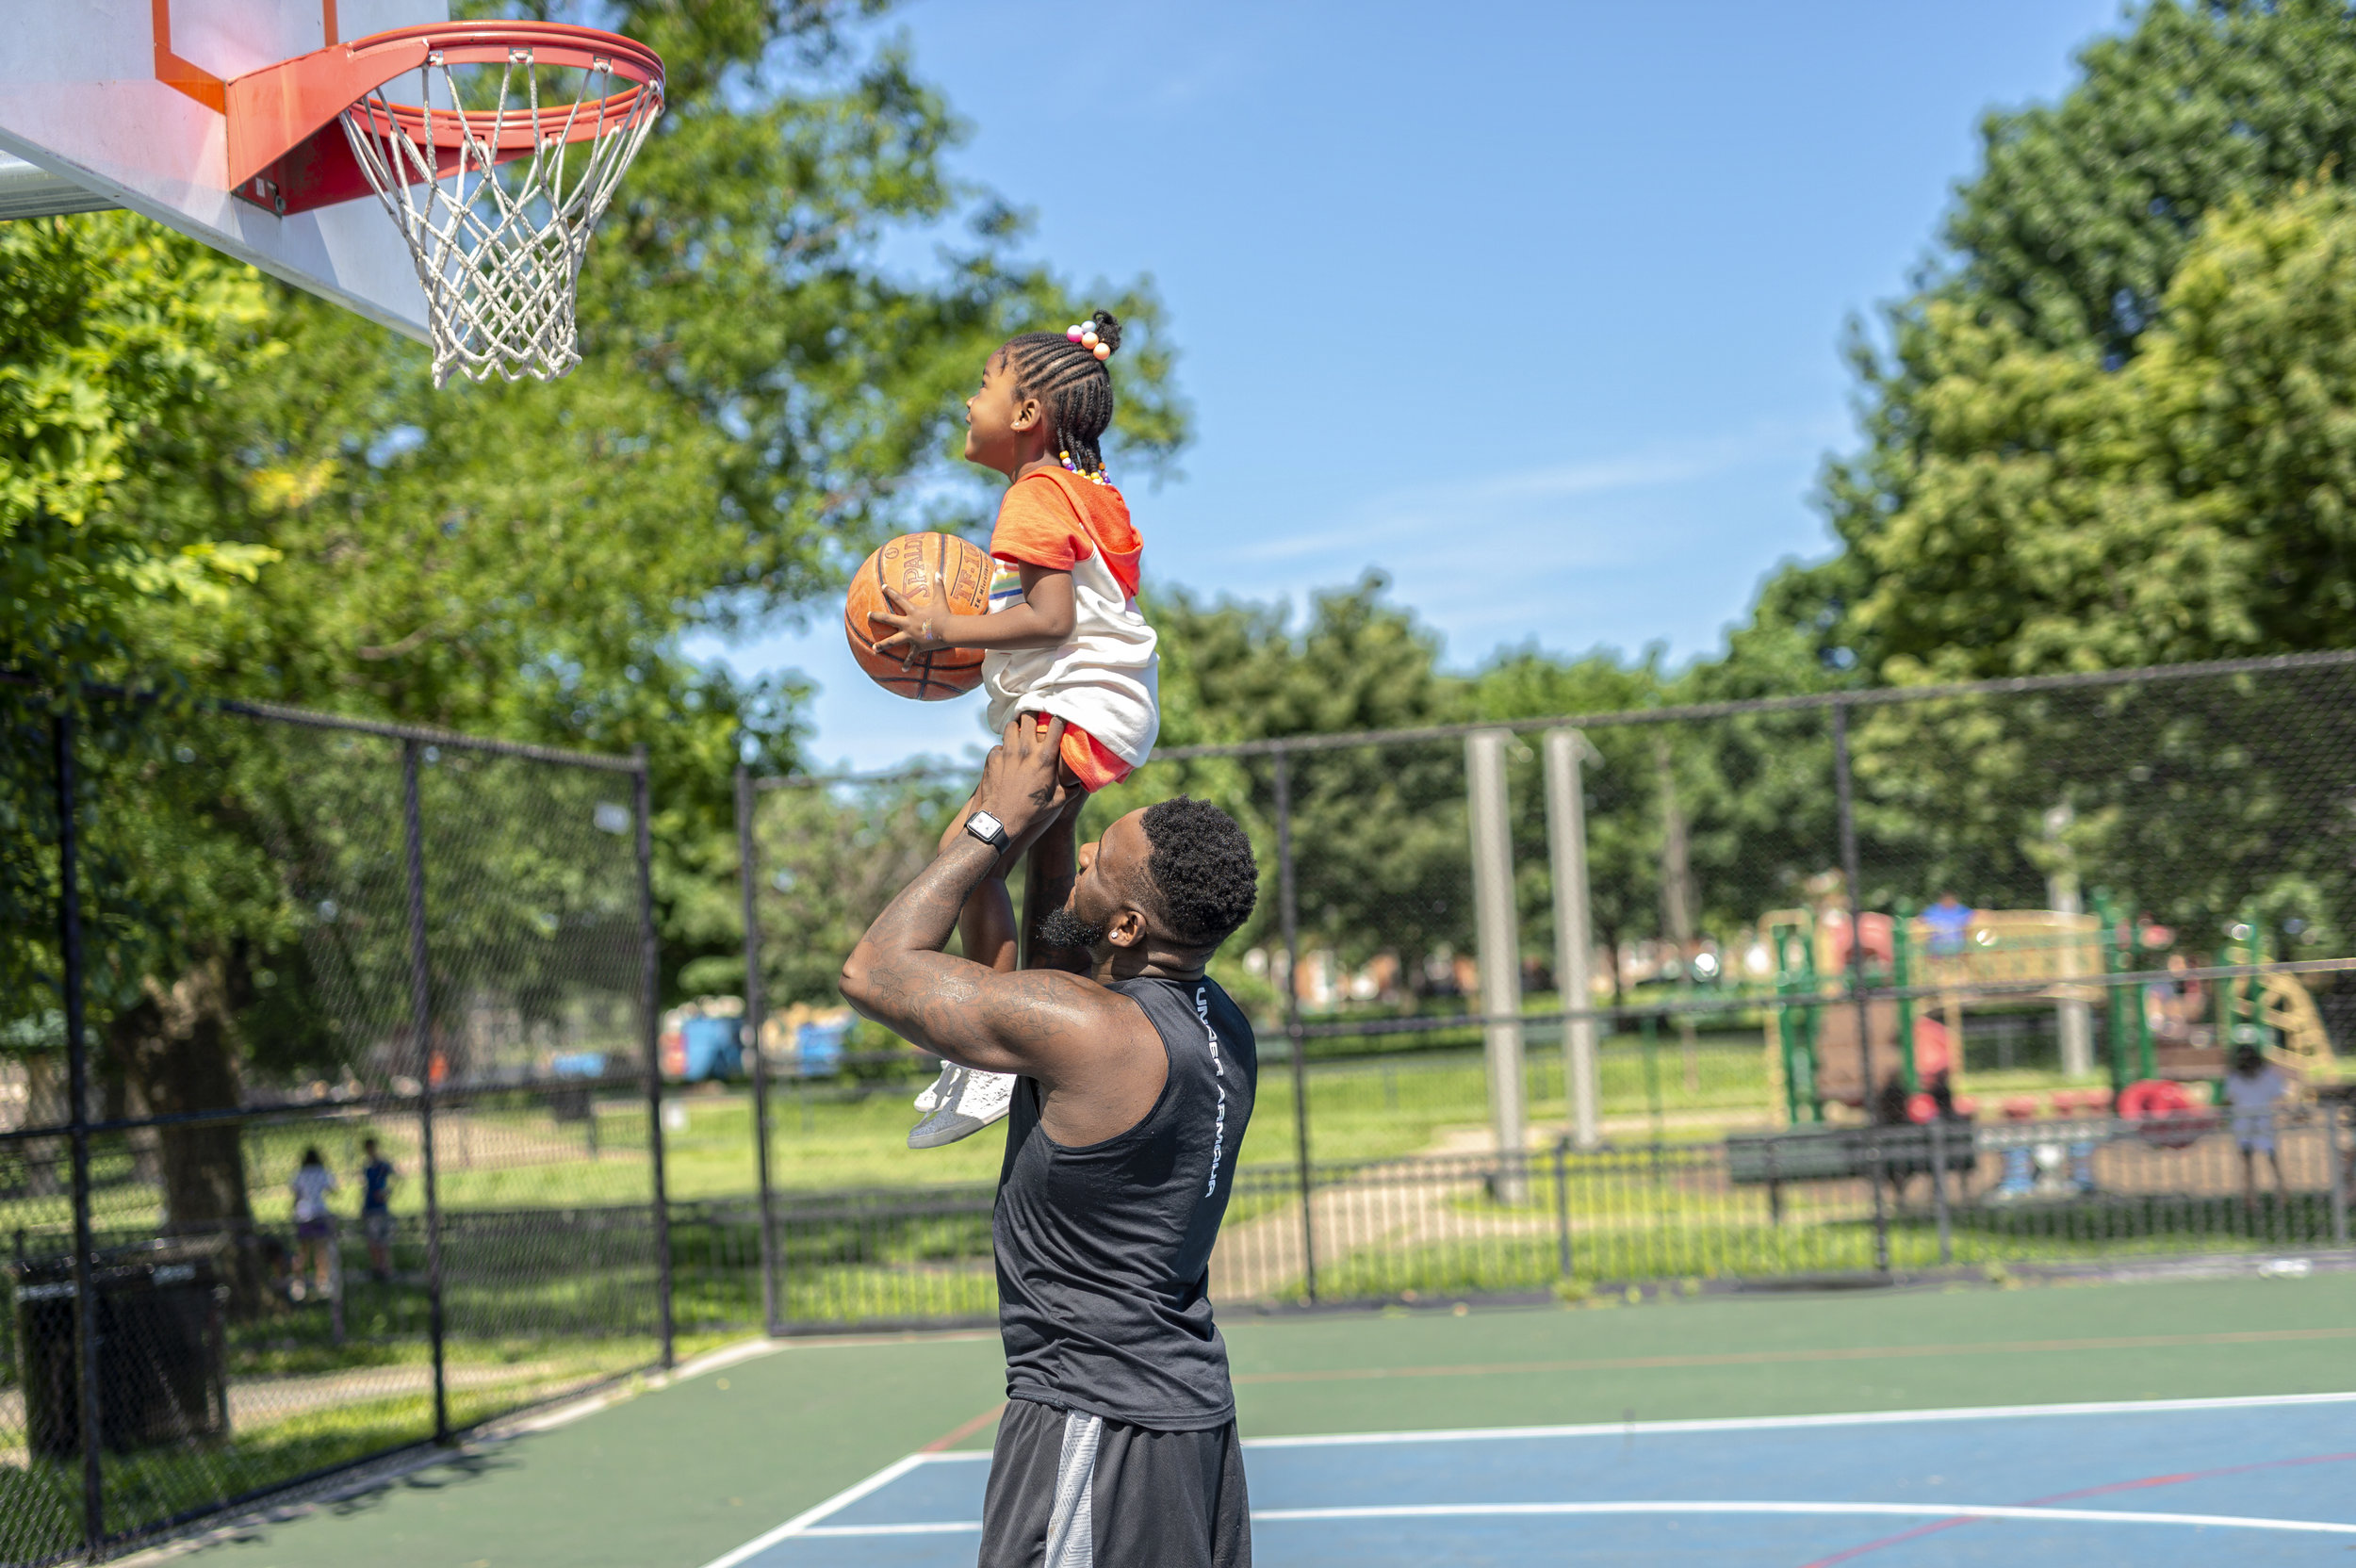 FATHER-DAUGHTER-PLAYING-BASKETBALL-DAYNA-BOLDEN-FAMILY.jpg